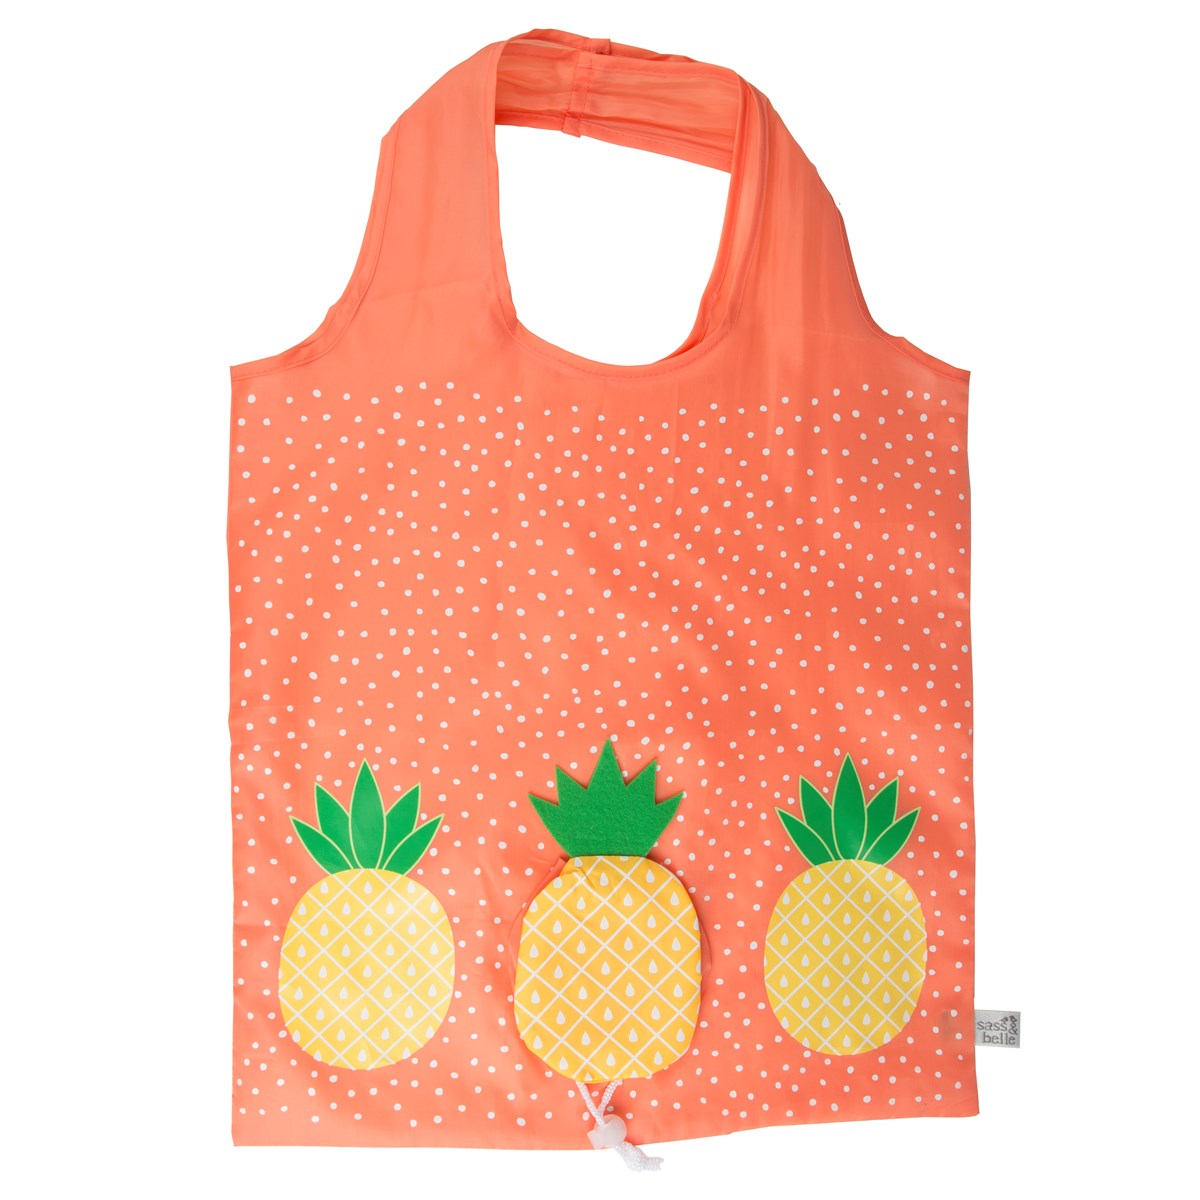 Simply Organized 181205 Foldable Shopping Bag Pineapple